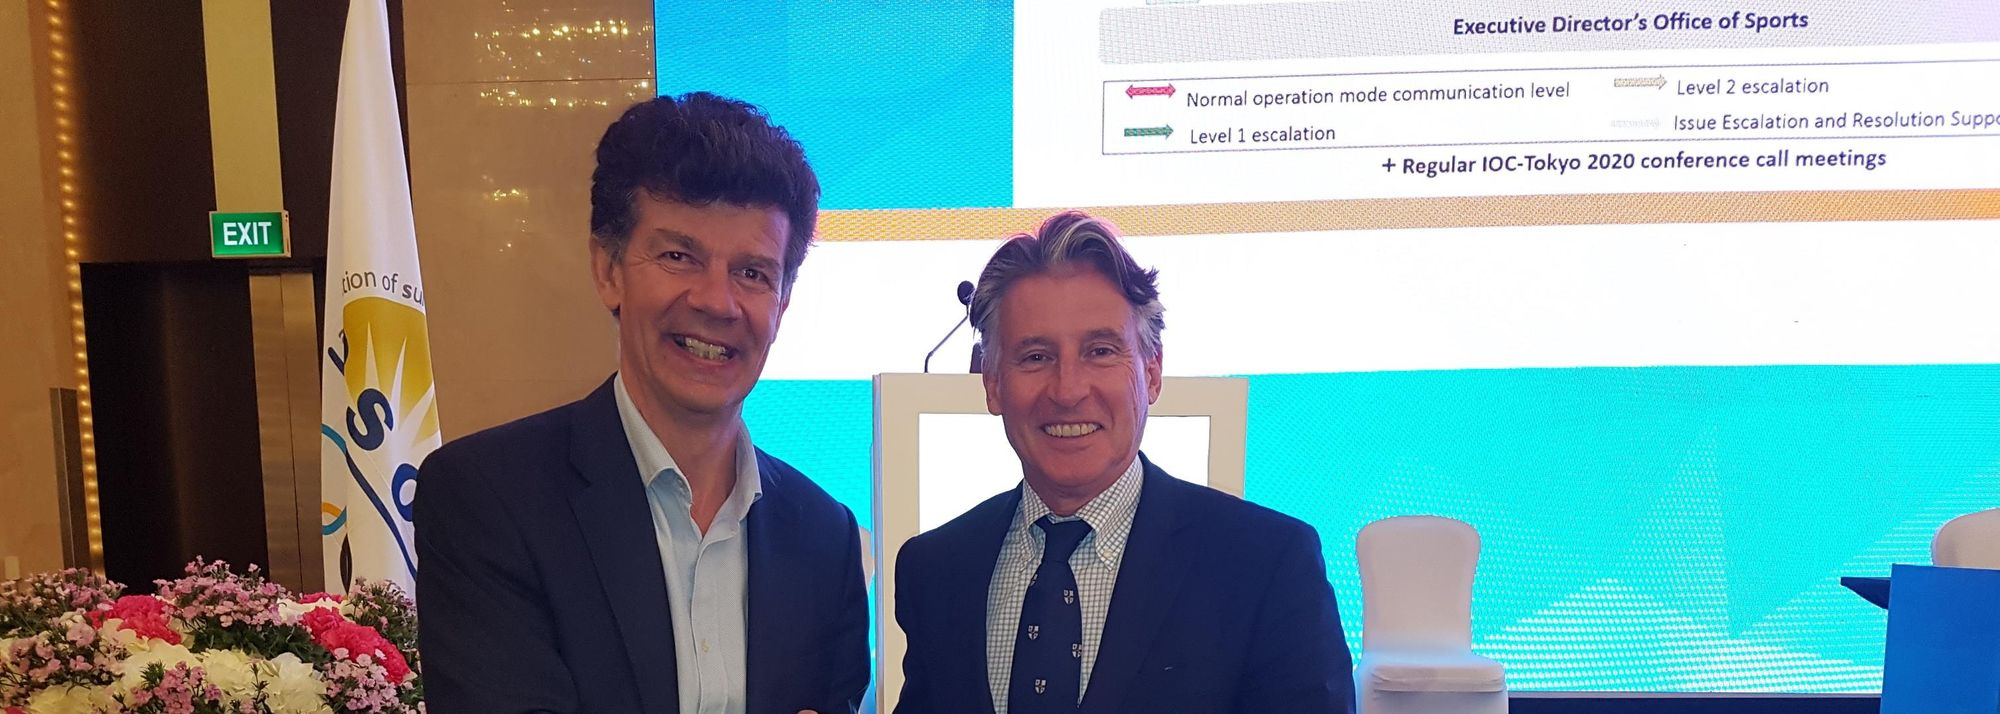 The IAAF World Championships London 2017 has been named Sportcal's Global Sports Event of the Year, the global sport market analysis firm announced today (17) at the SportAccord World Sport and Business Summit in Bangkok.